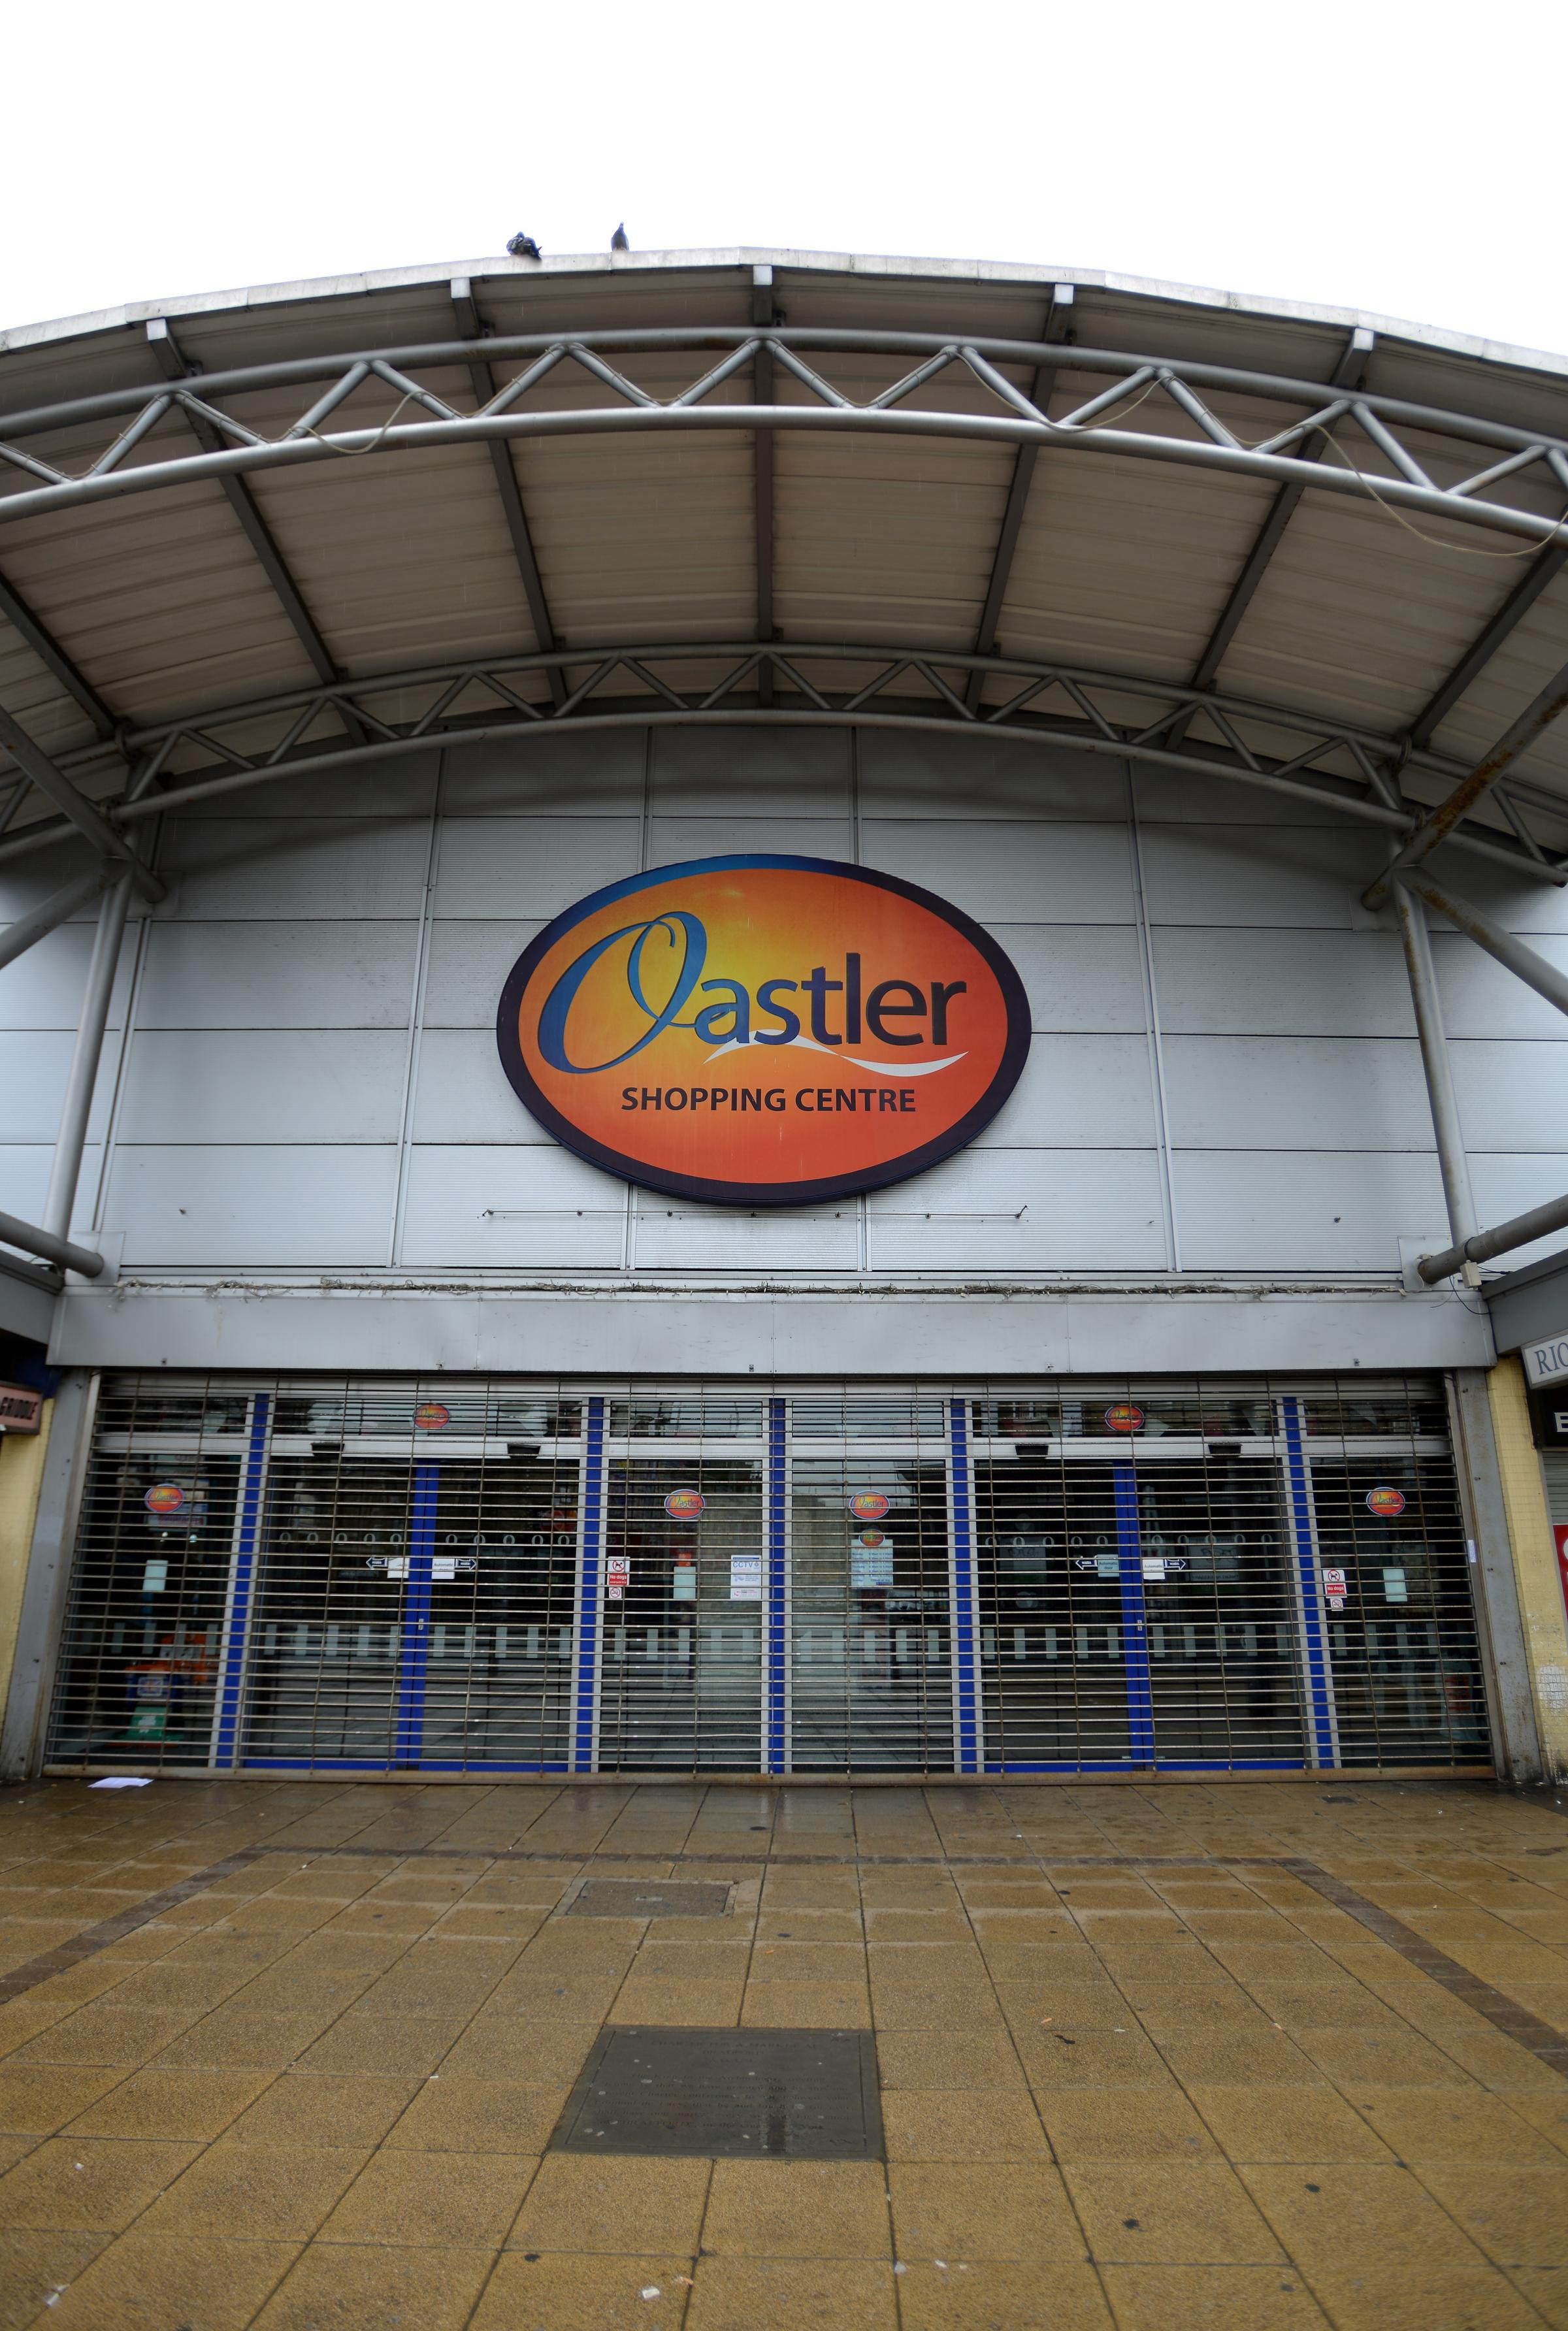 The Oastler Centre in John Street In Bradford.